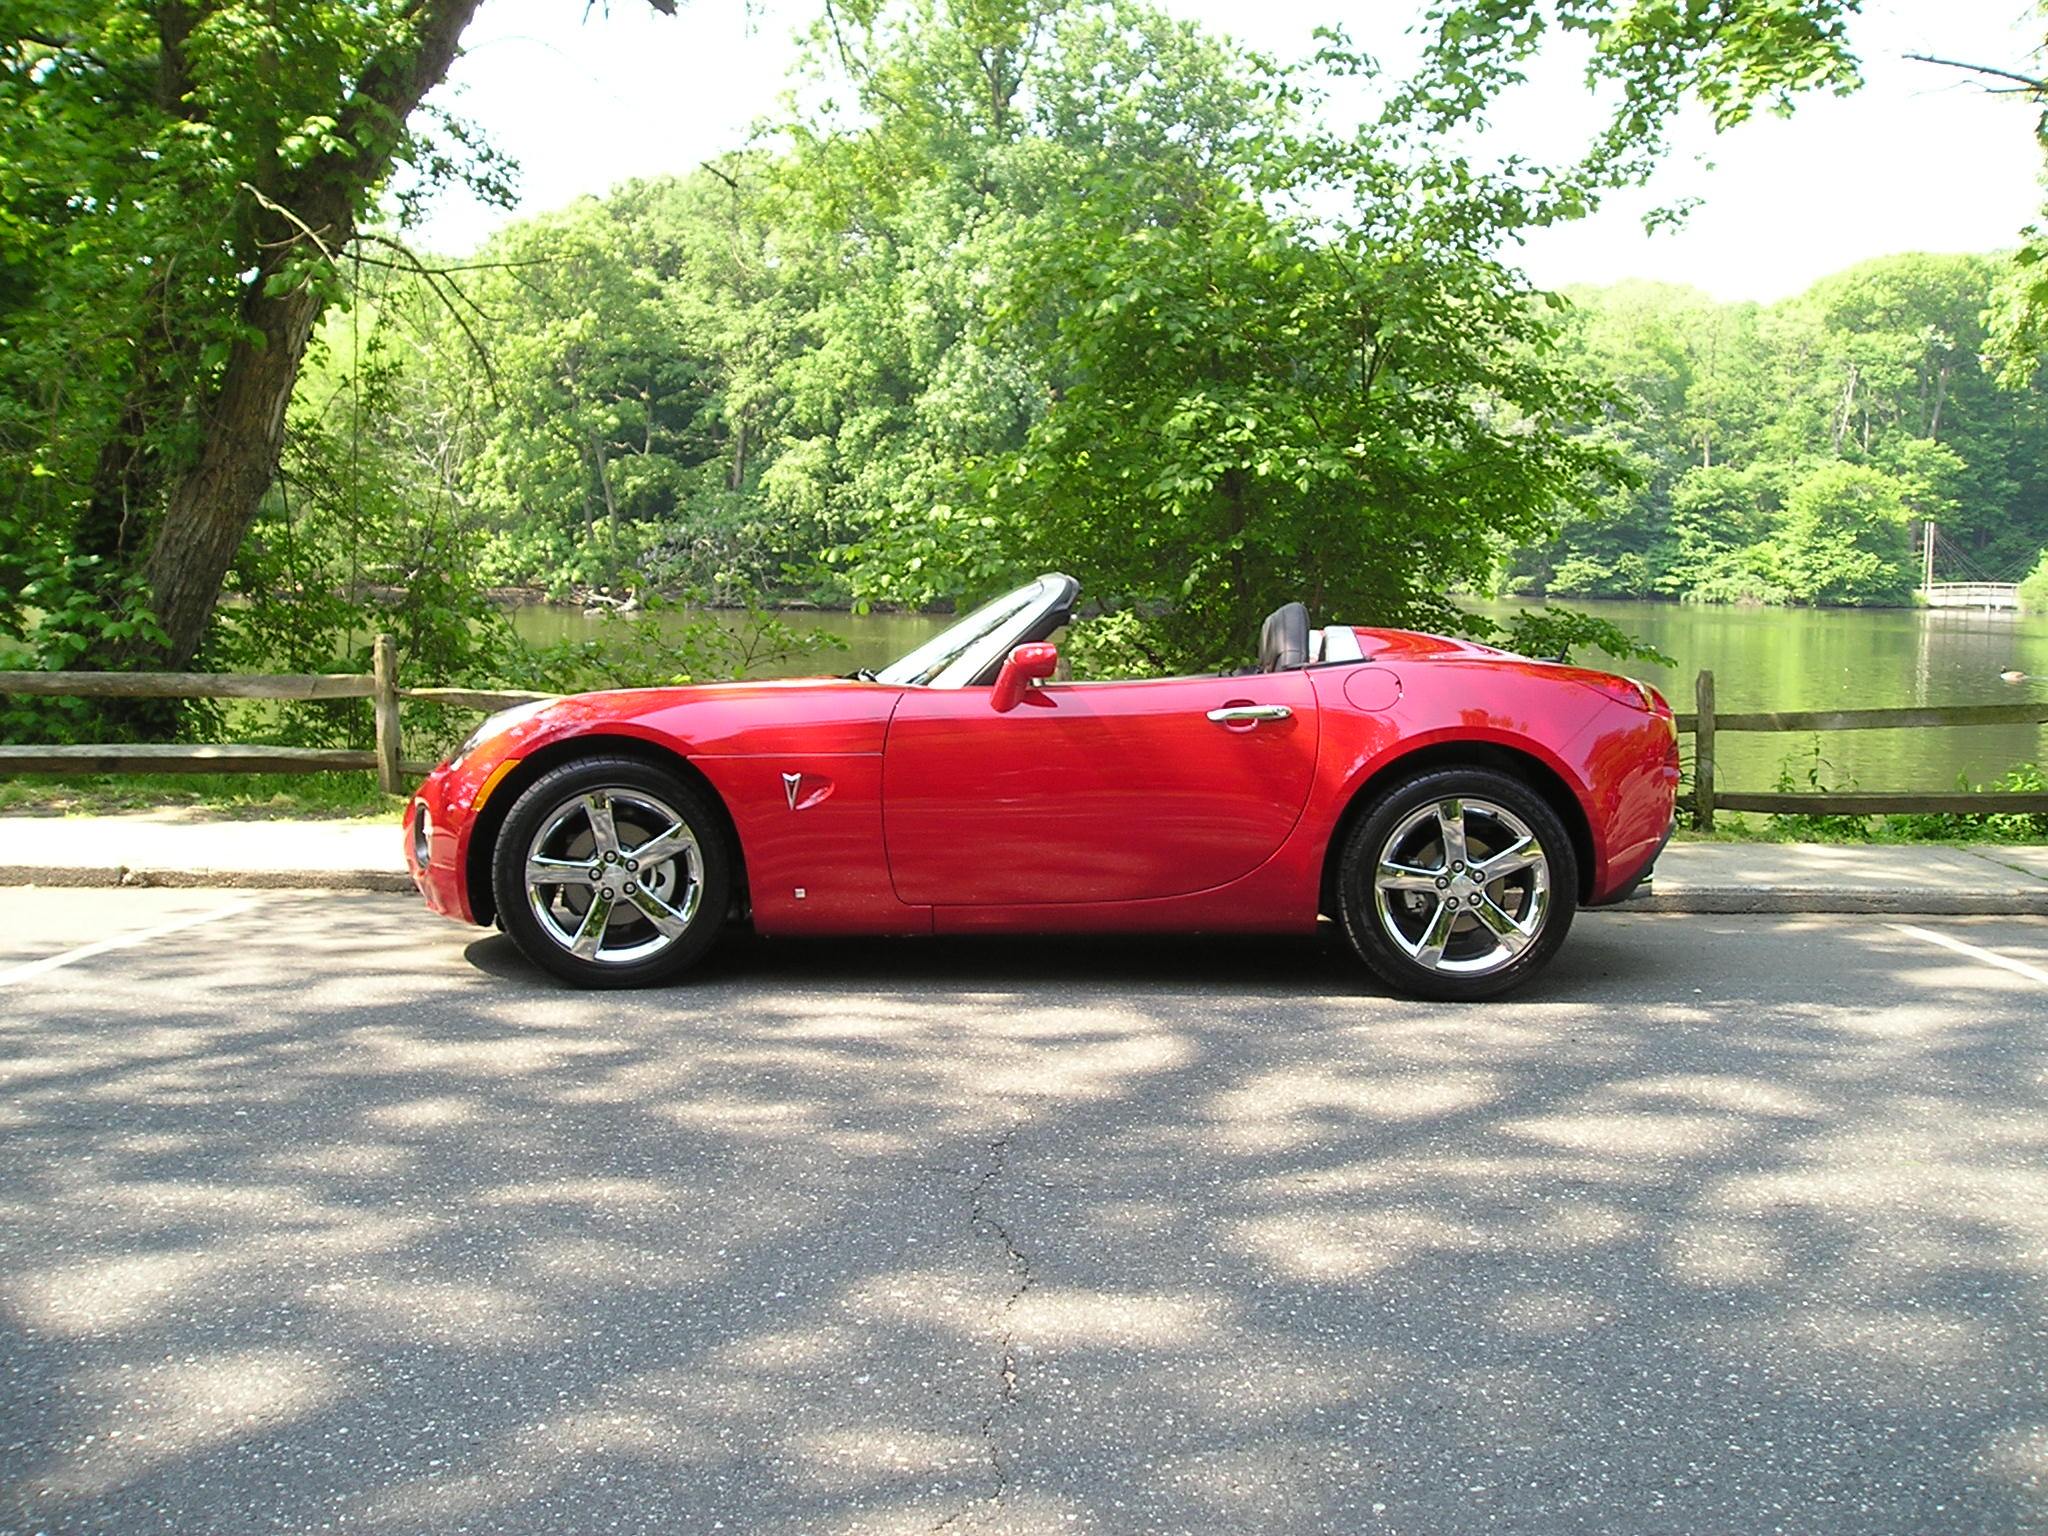 2007 Pontiac Solstice Gxp Aggressive Red Automatic For